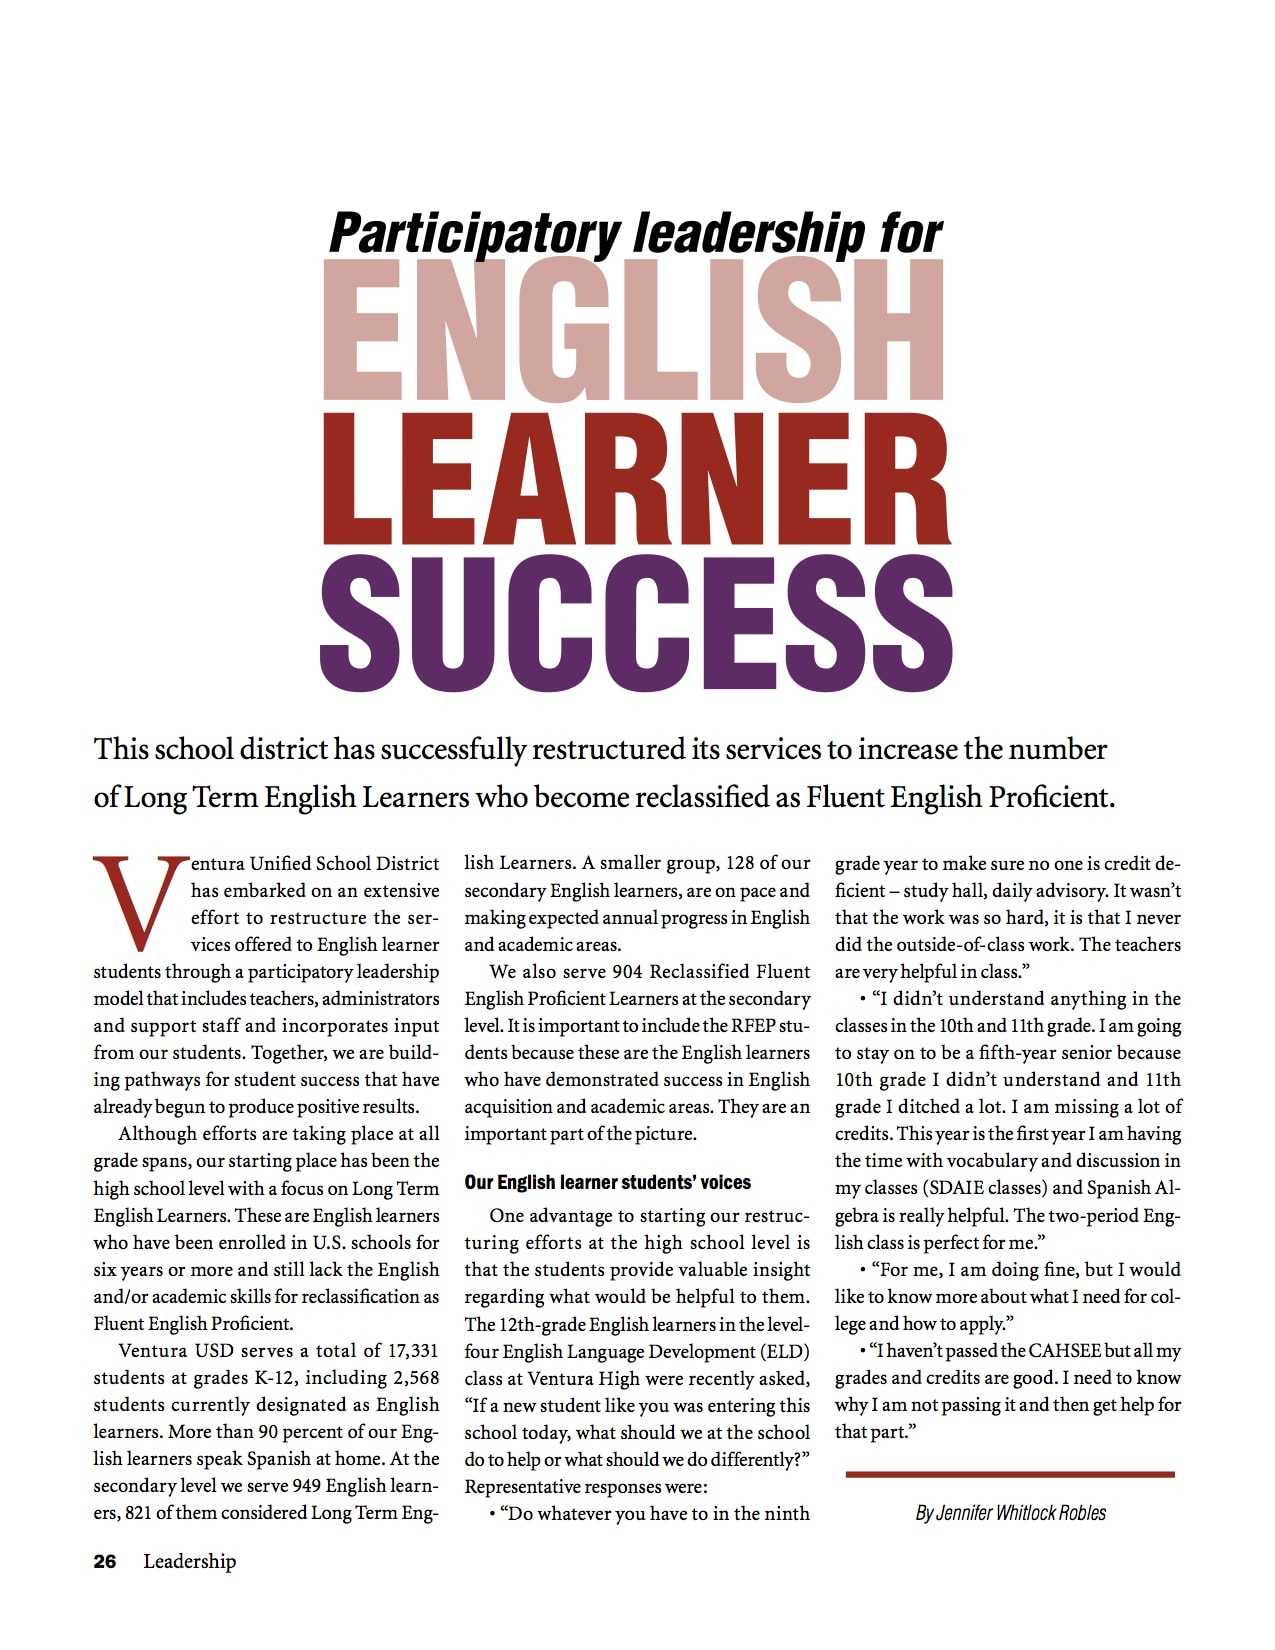 Participatory Leadership for English Learner Success